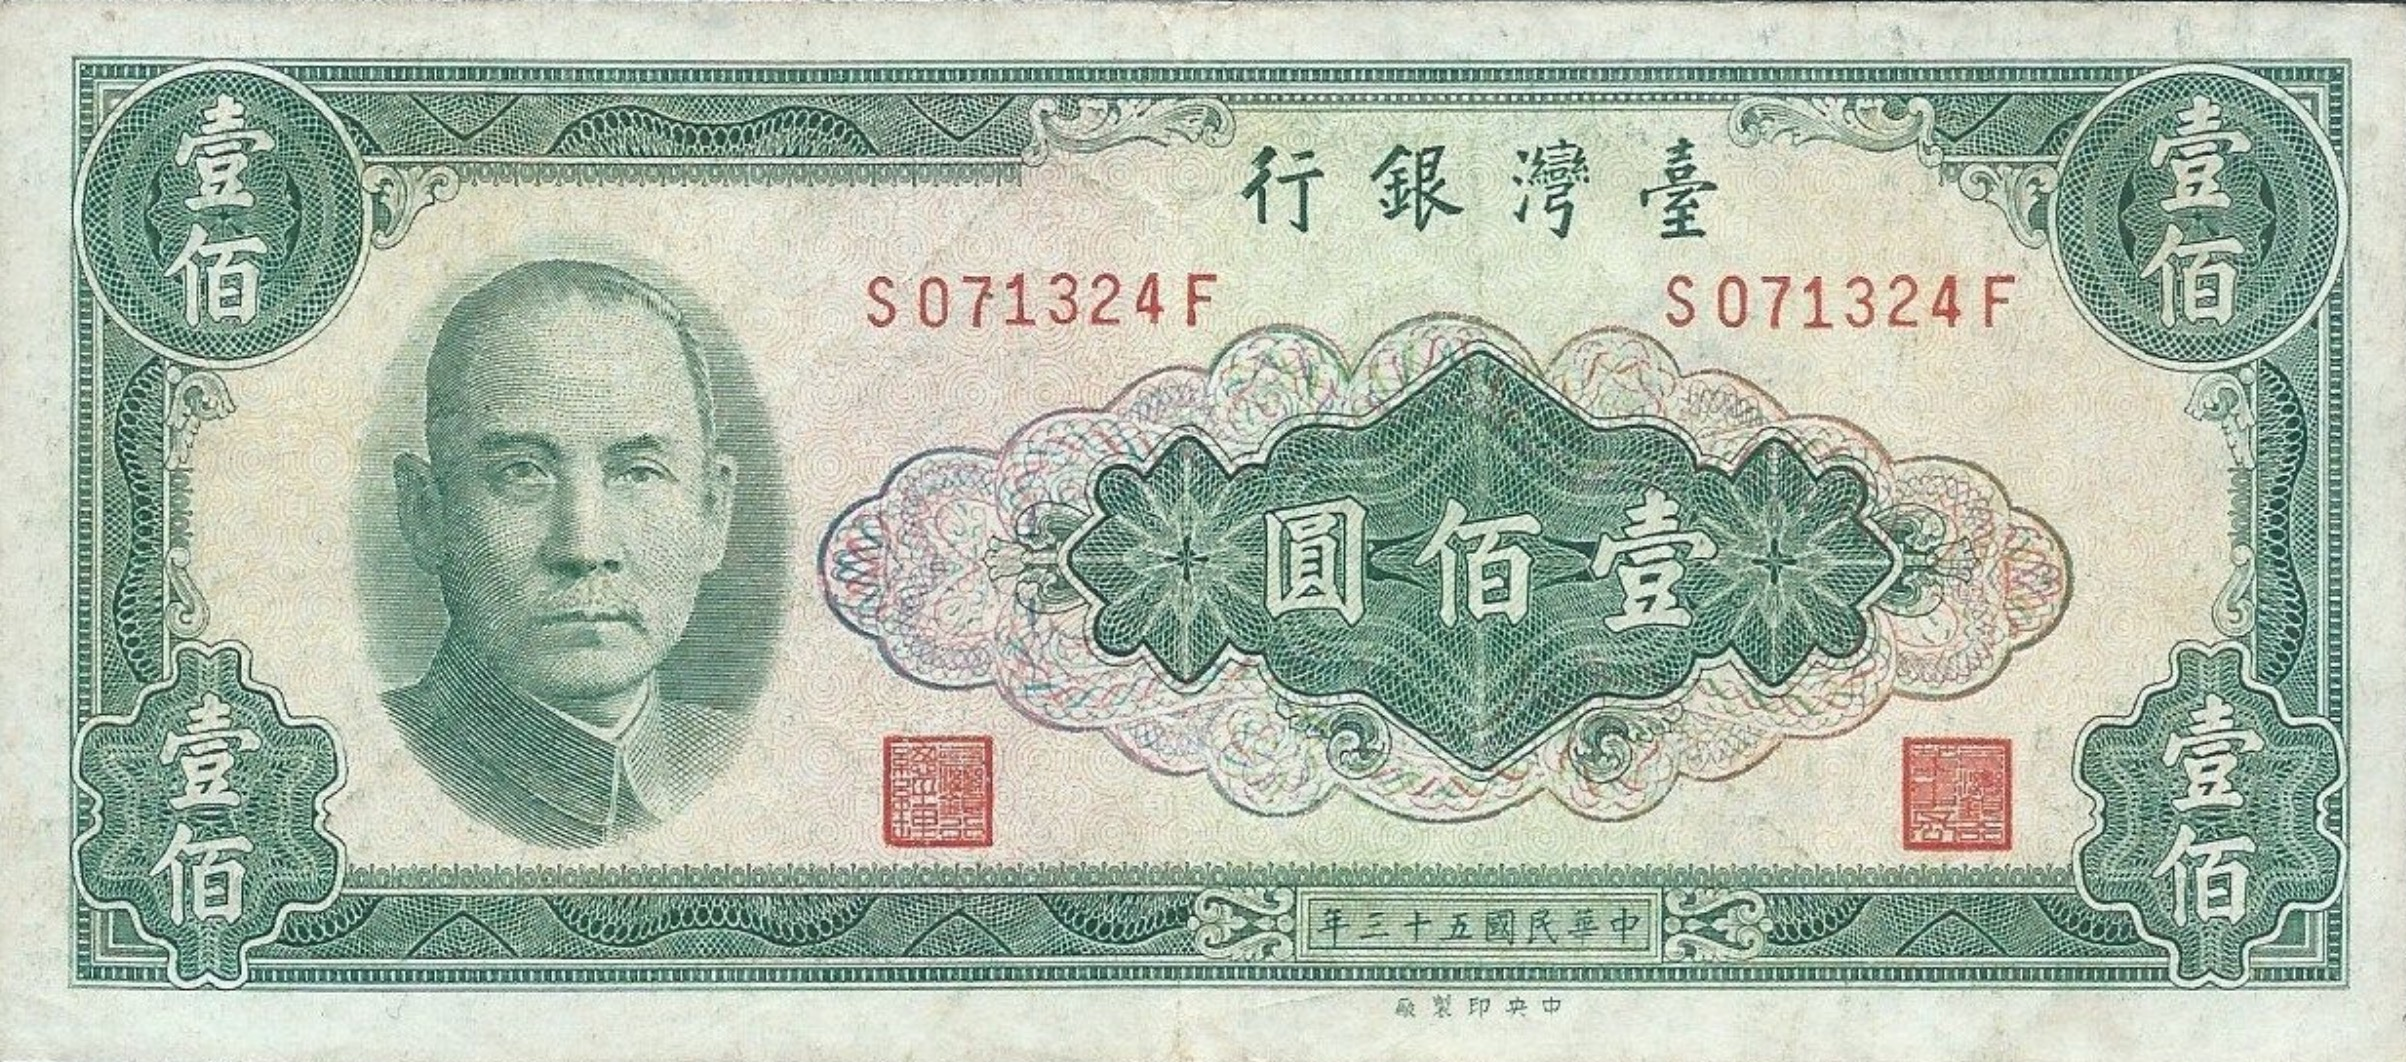 100 New Taiwan Dollars banknote (1964 issue)